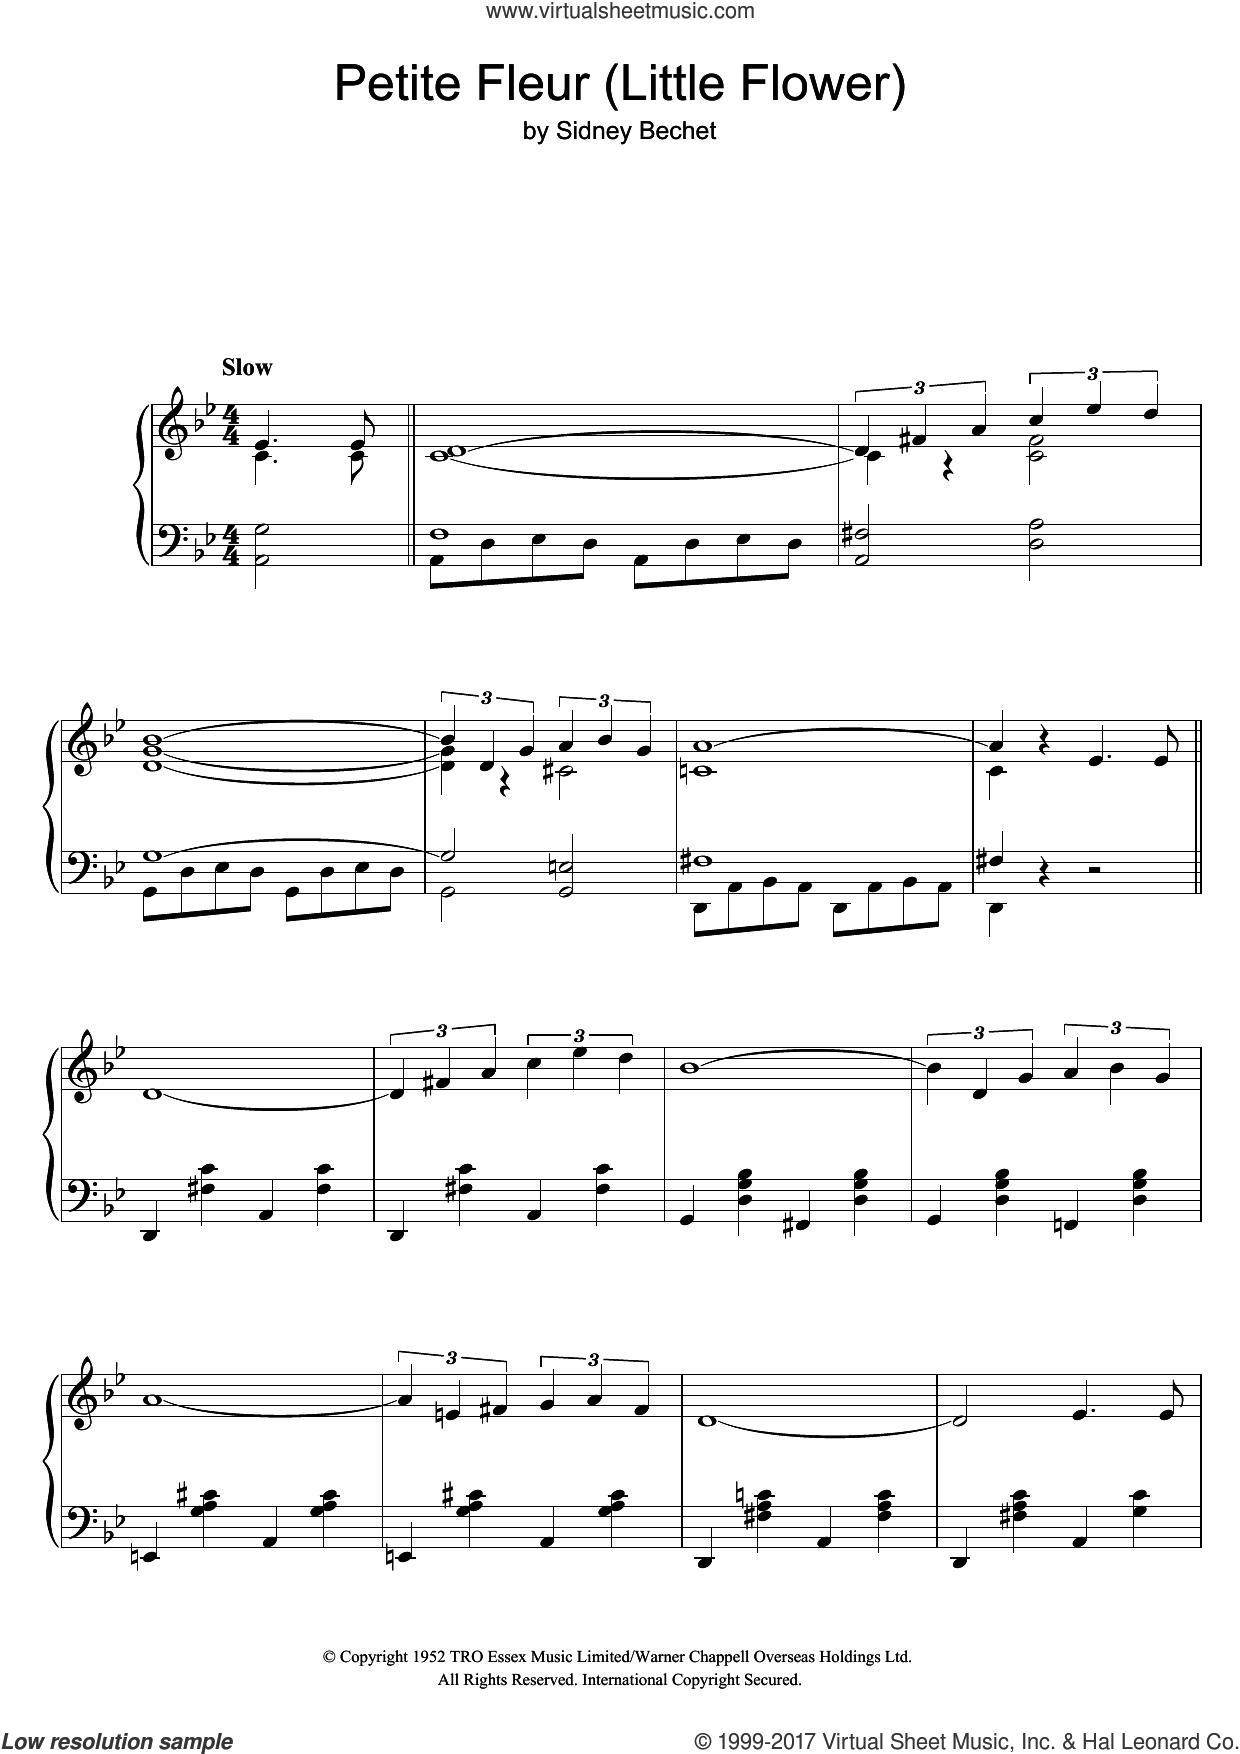 Petite Fleur (Little Flower) sheet music for piano solo by Chris Barber's Jazz Band and Sidney Bechet, intermediate skill level